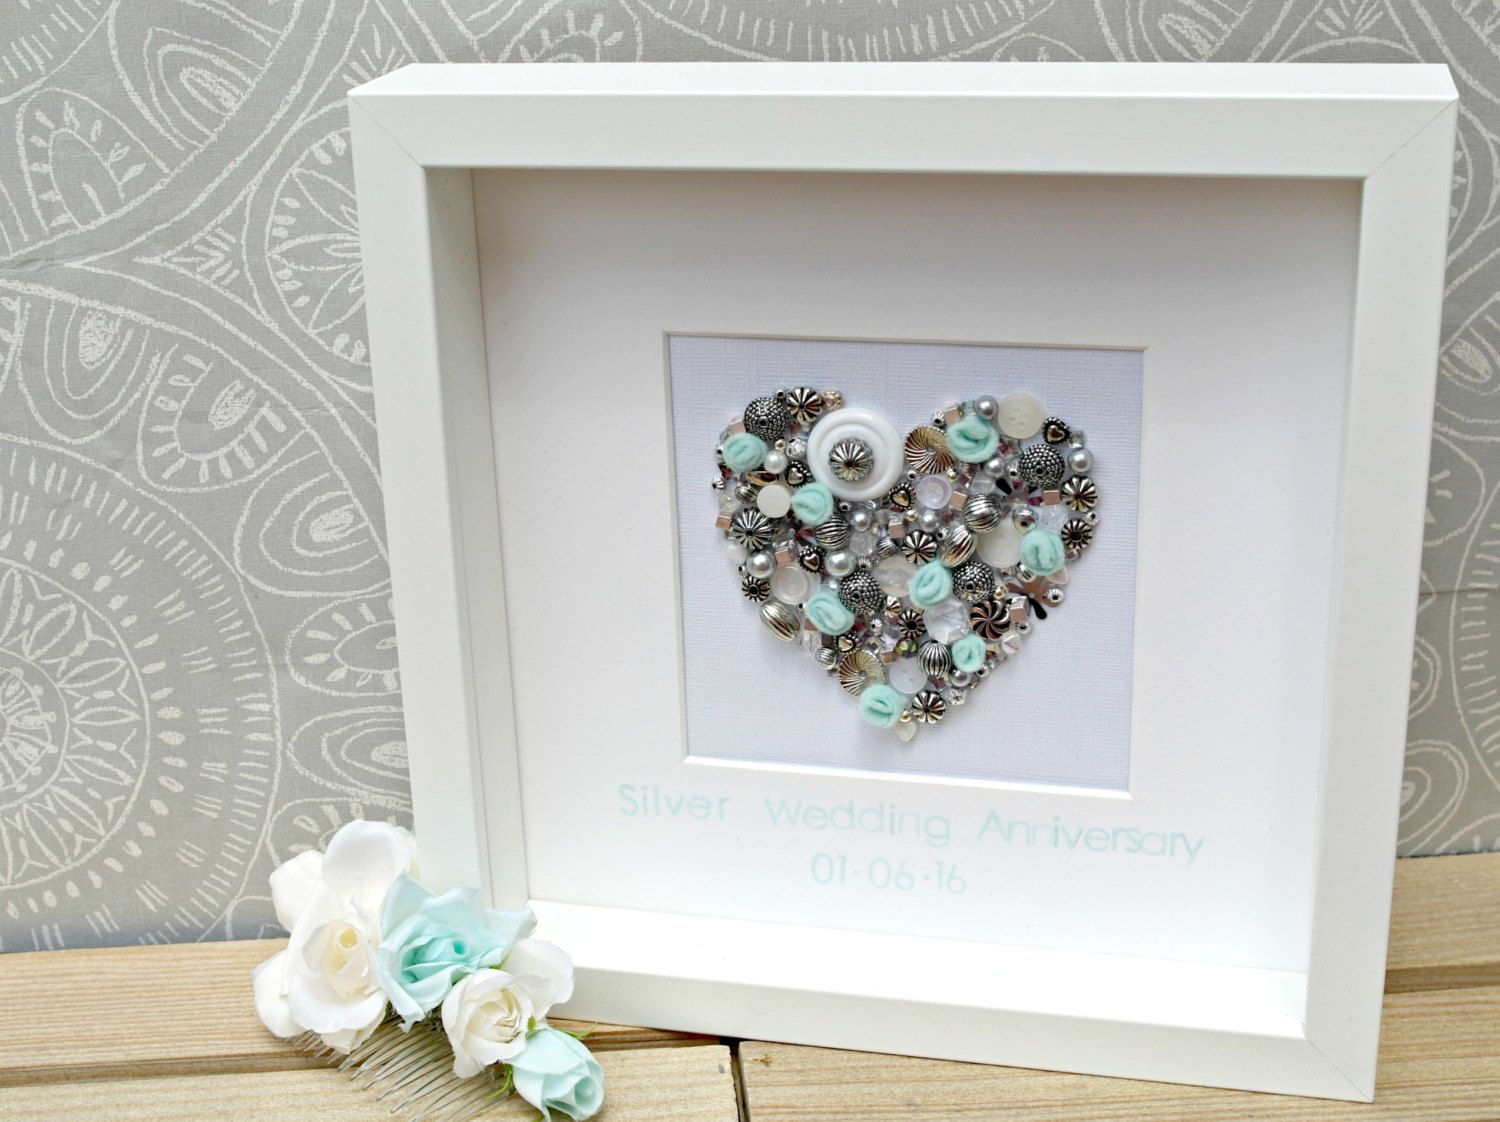 Gift Ideas For Silver Wedding Anniversary: Silver Wedding Anniversary Gift. Sequin And Bead Heart